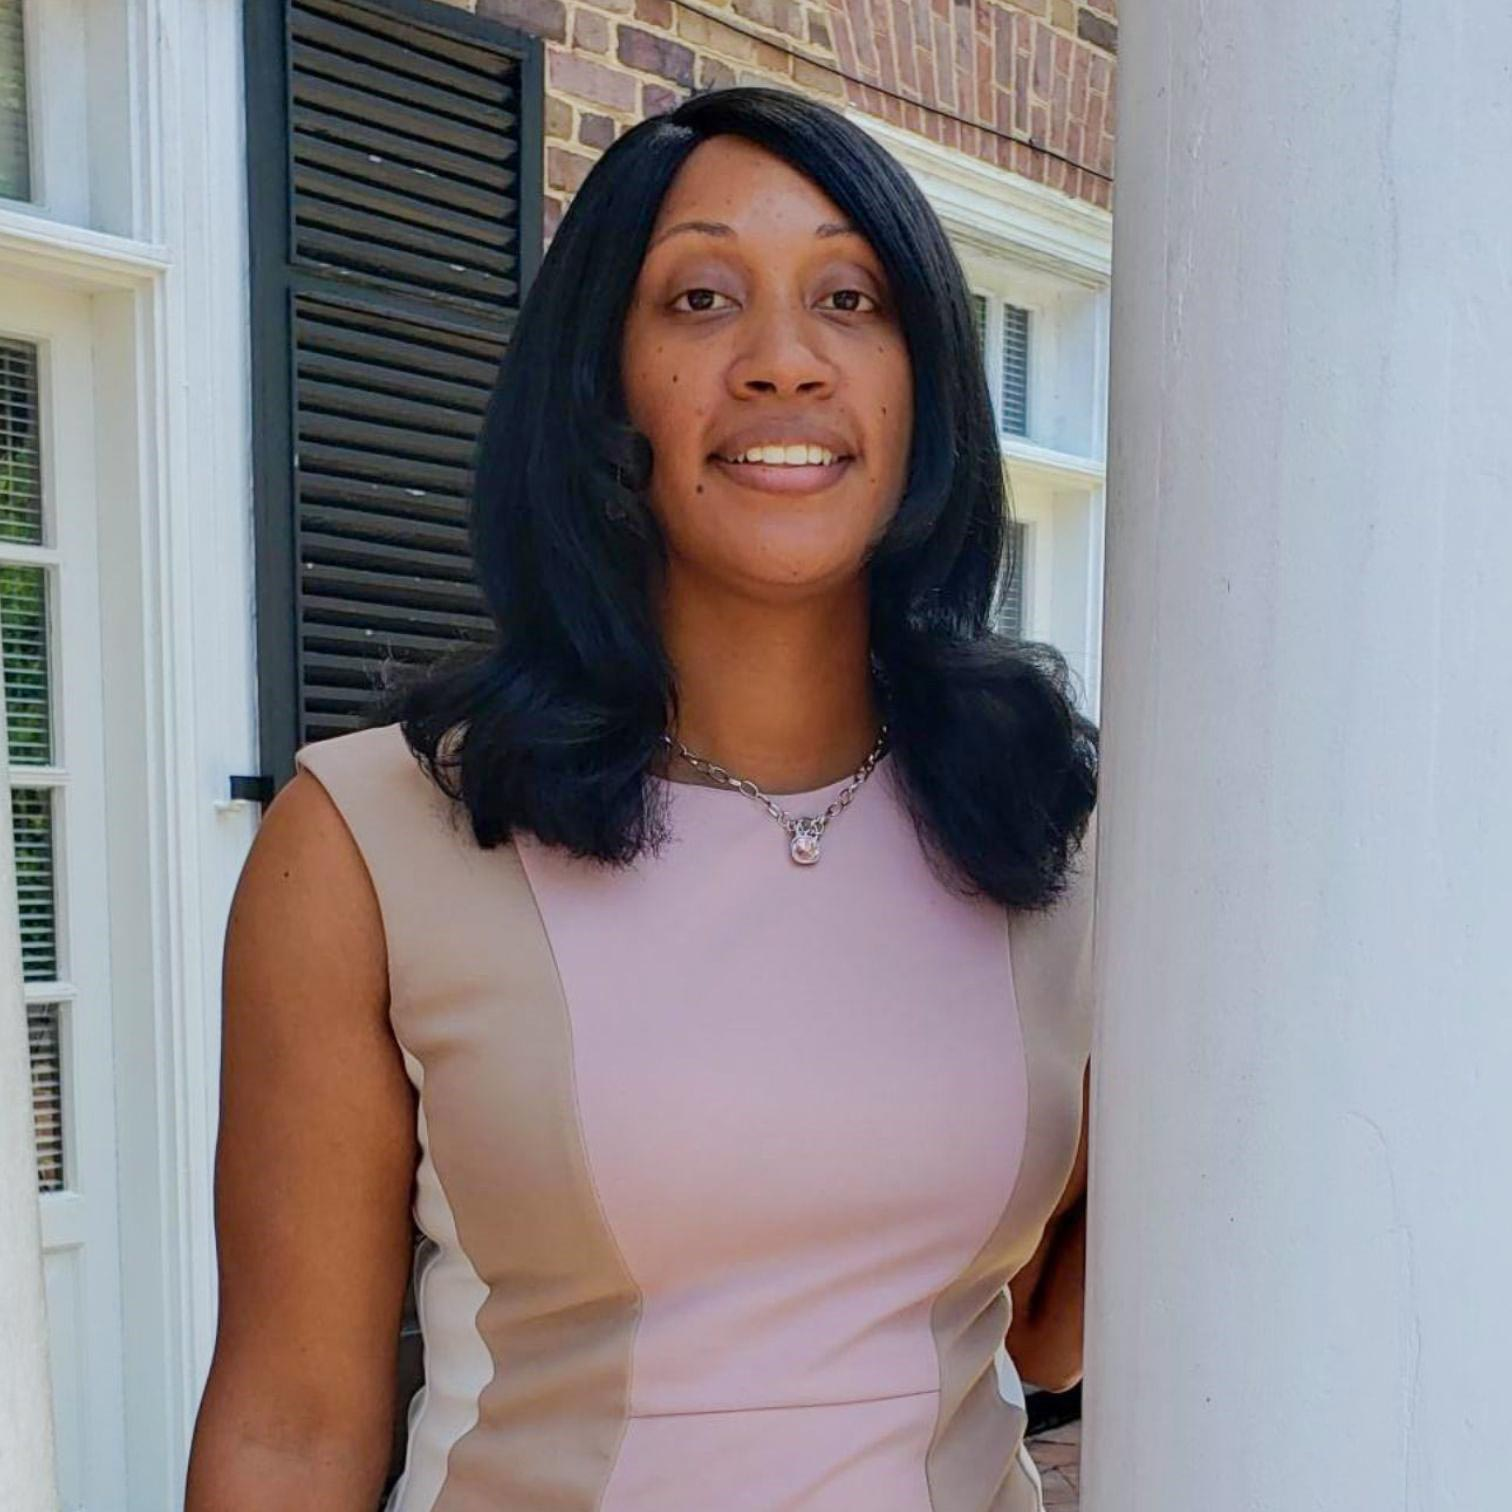 NyShae Carter has helped to invigorate the Black Faculty & Staff Employee Resource Group.